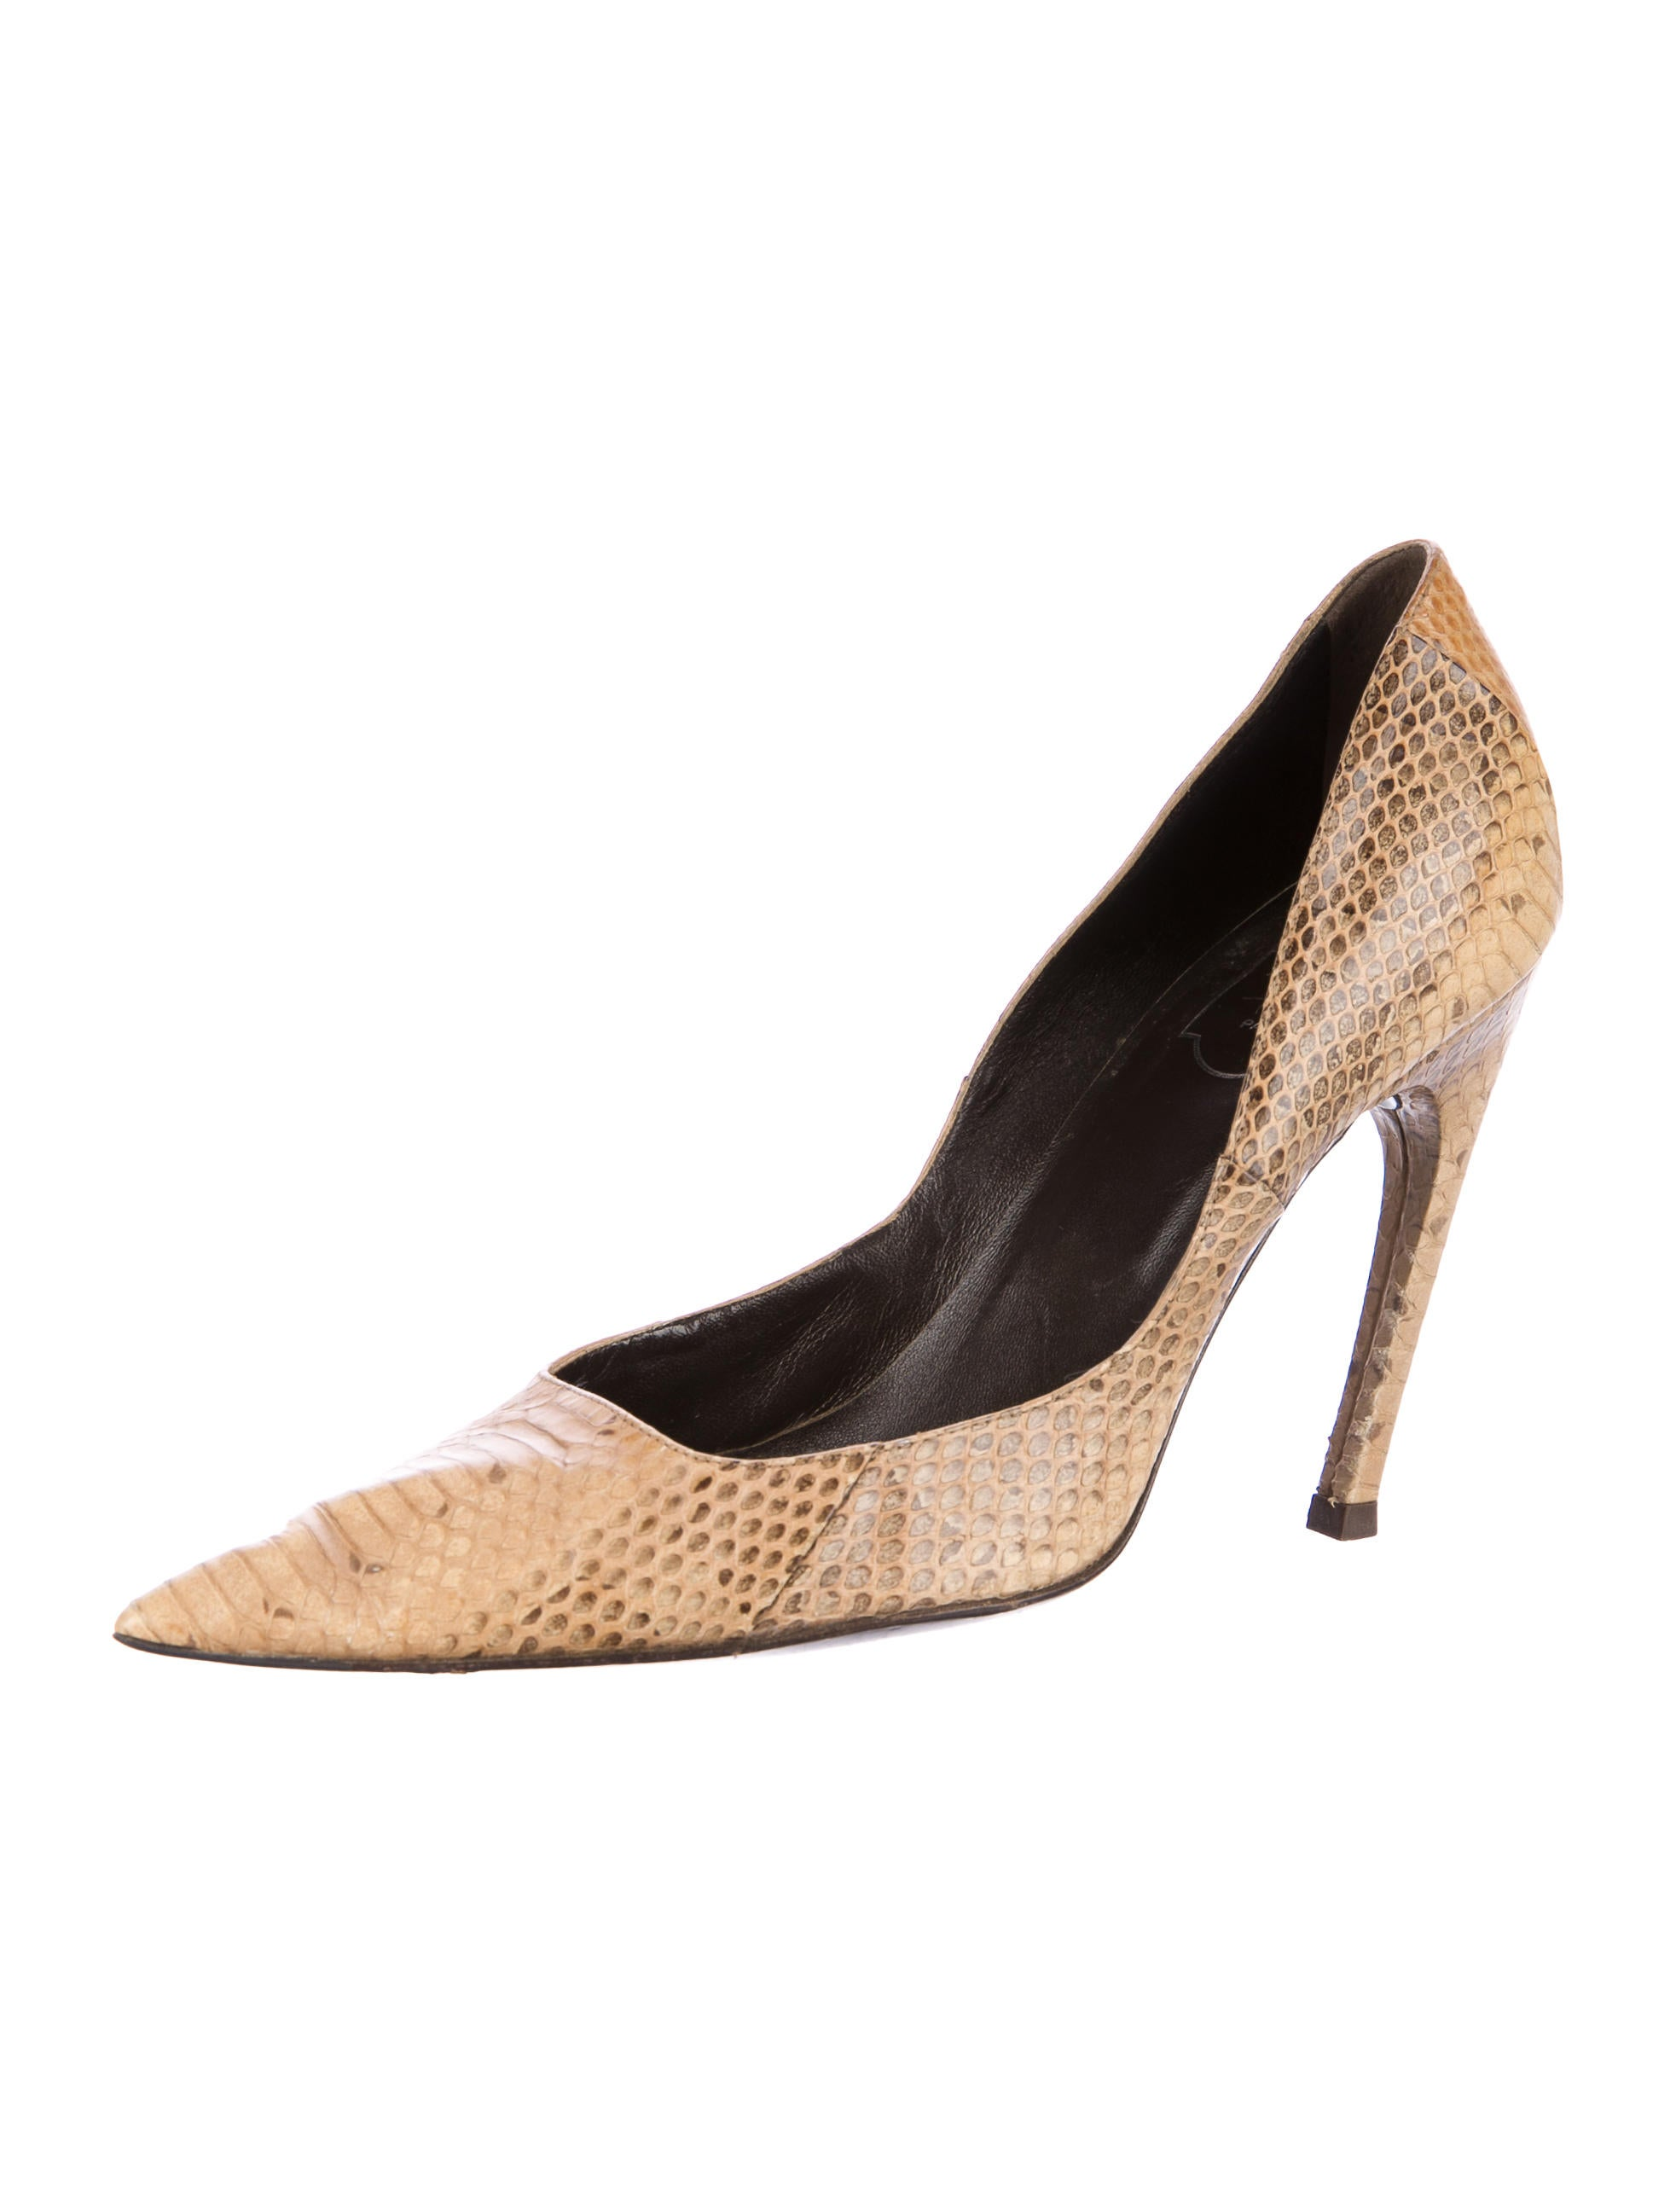 Roger Vivier Python Pointed-Toe Pumps official sale online cheap extremely eMSs819